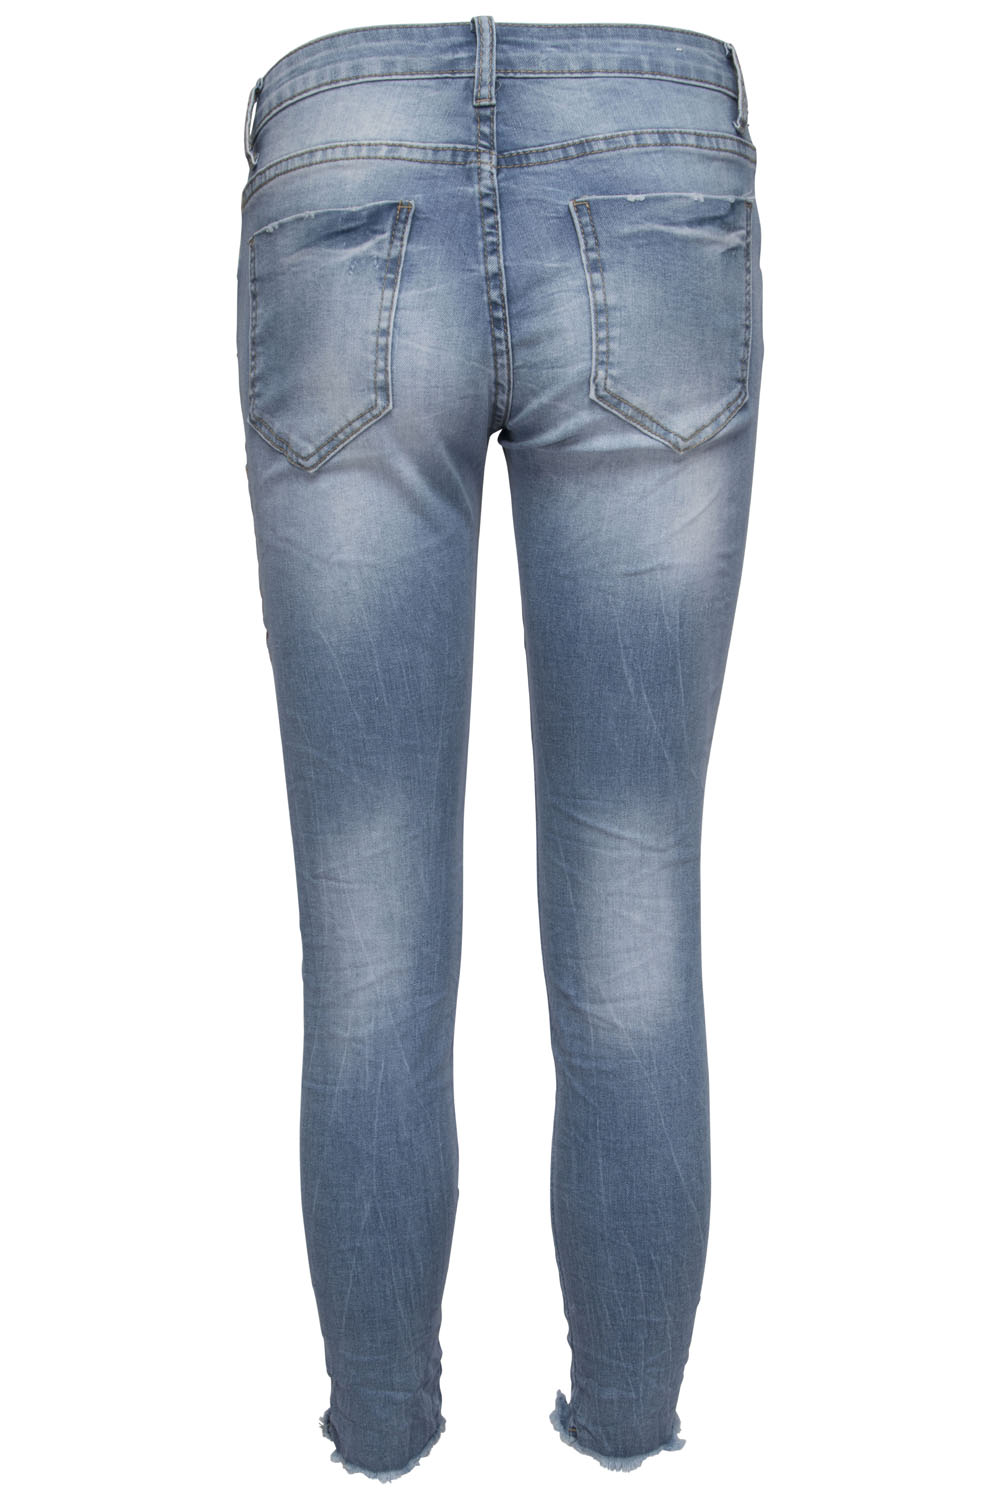 Chica-London-Broderade-Jeans-L8072